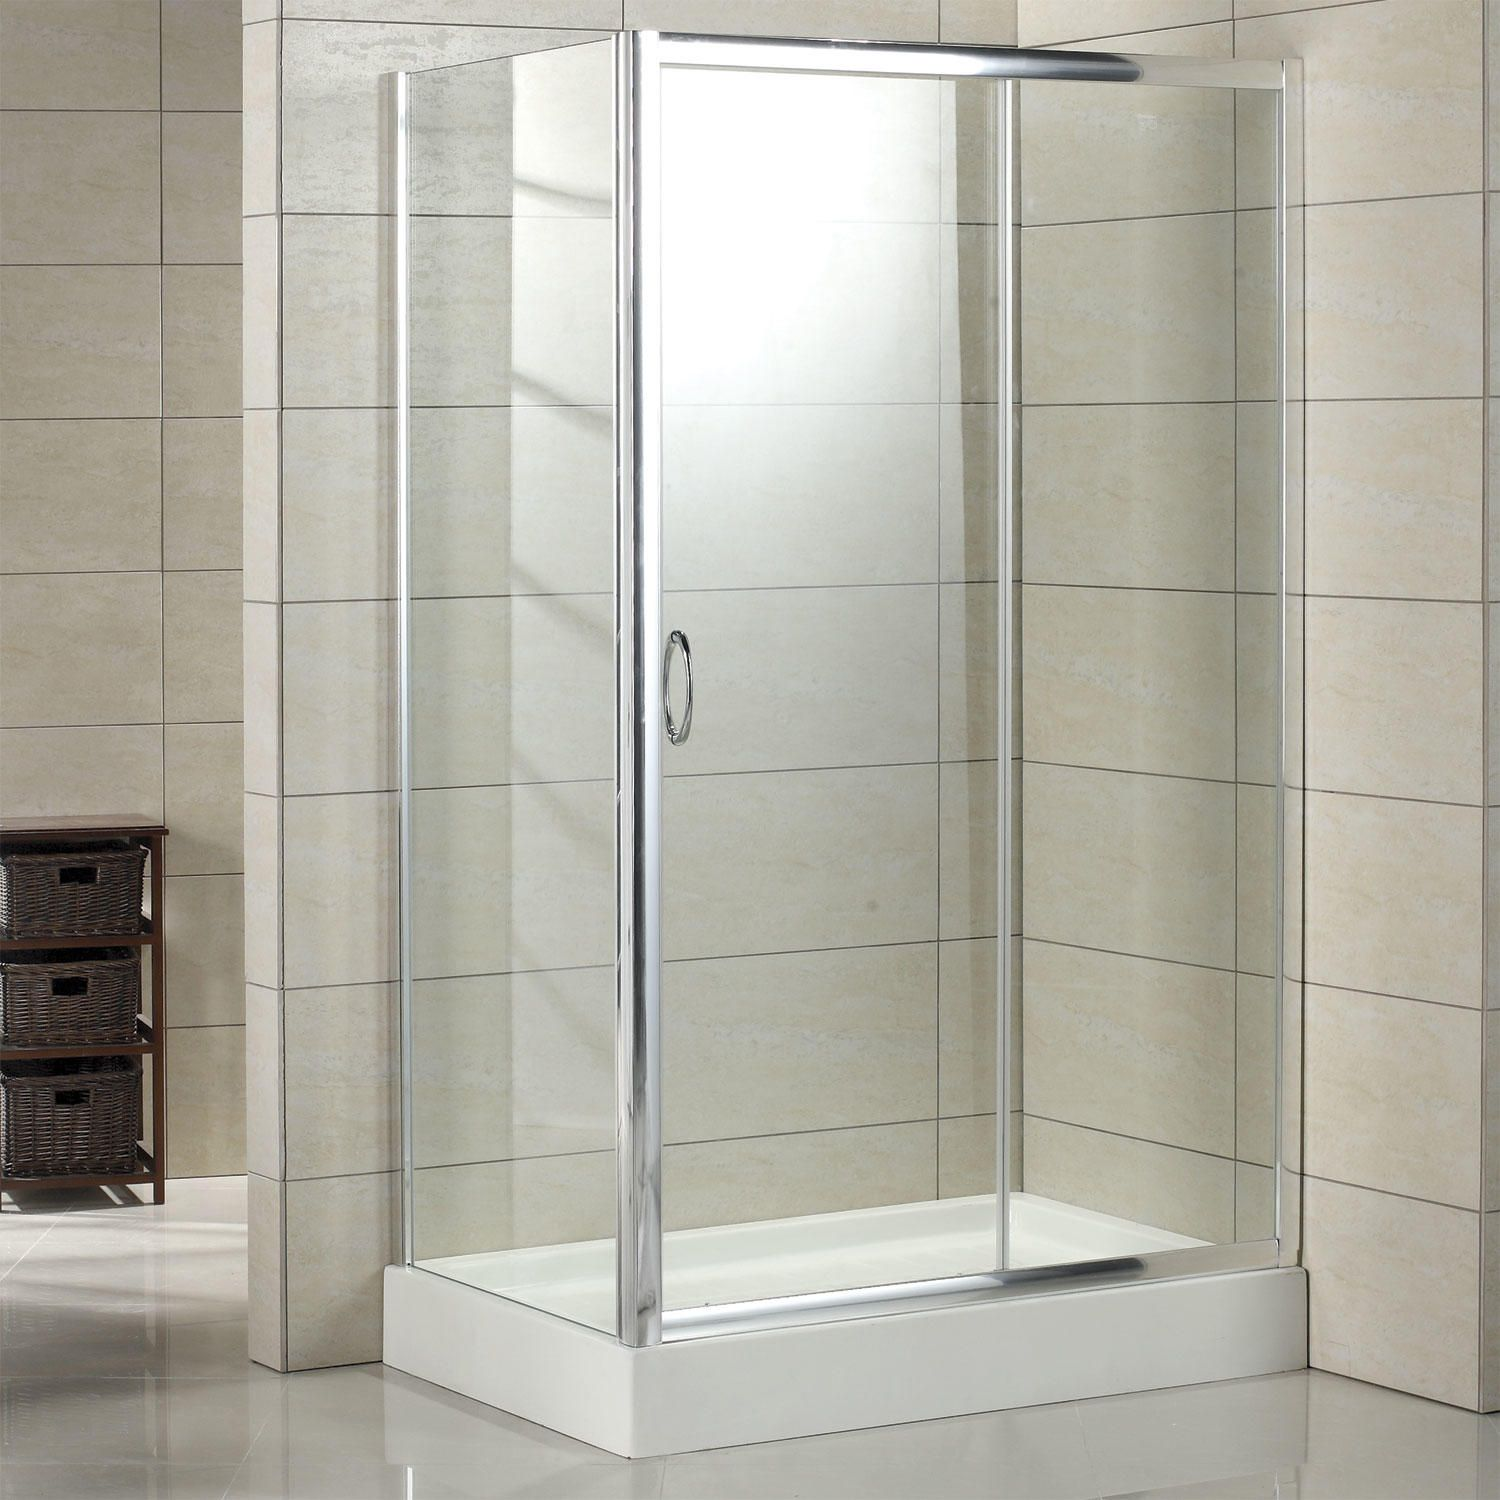 48 X 34 Rectangular Corner Shower Enclosure Bathroom Casitas